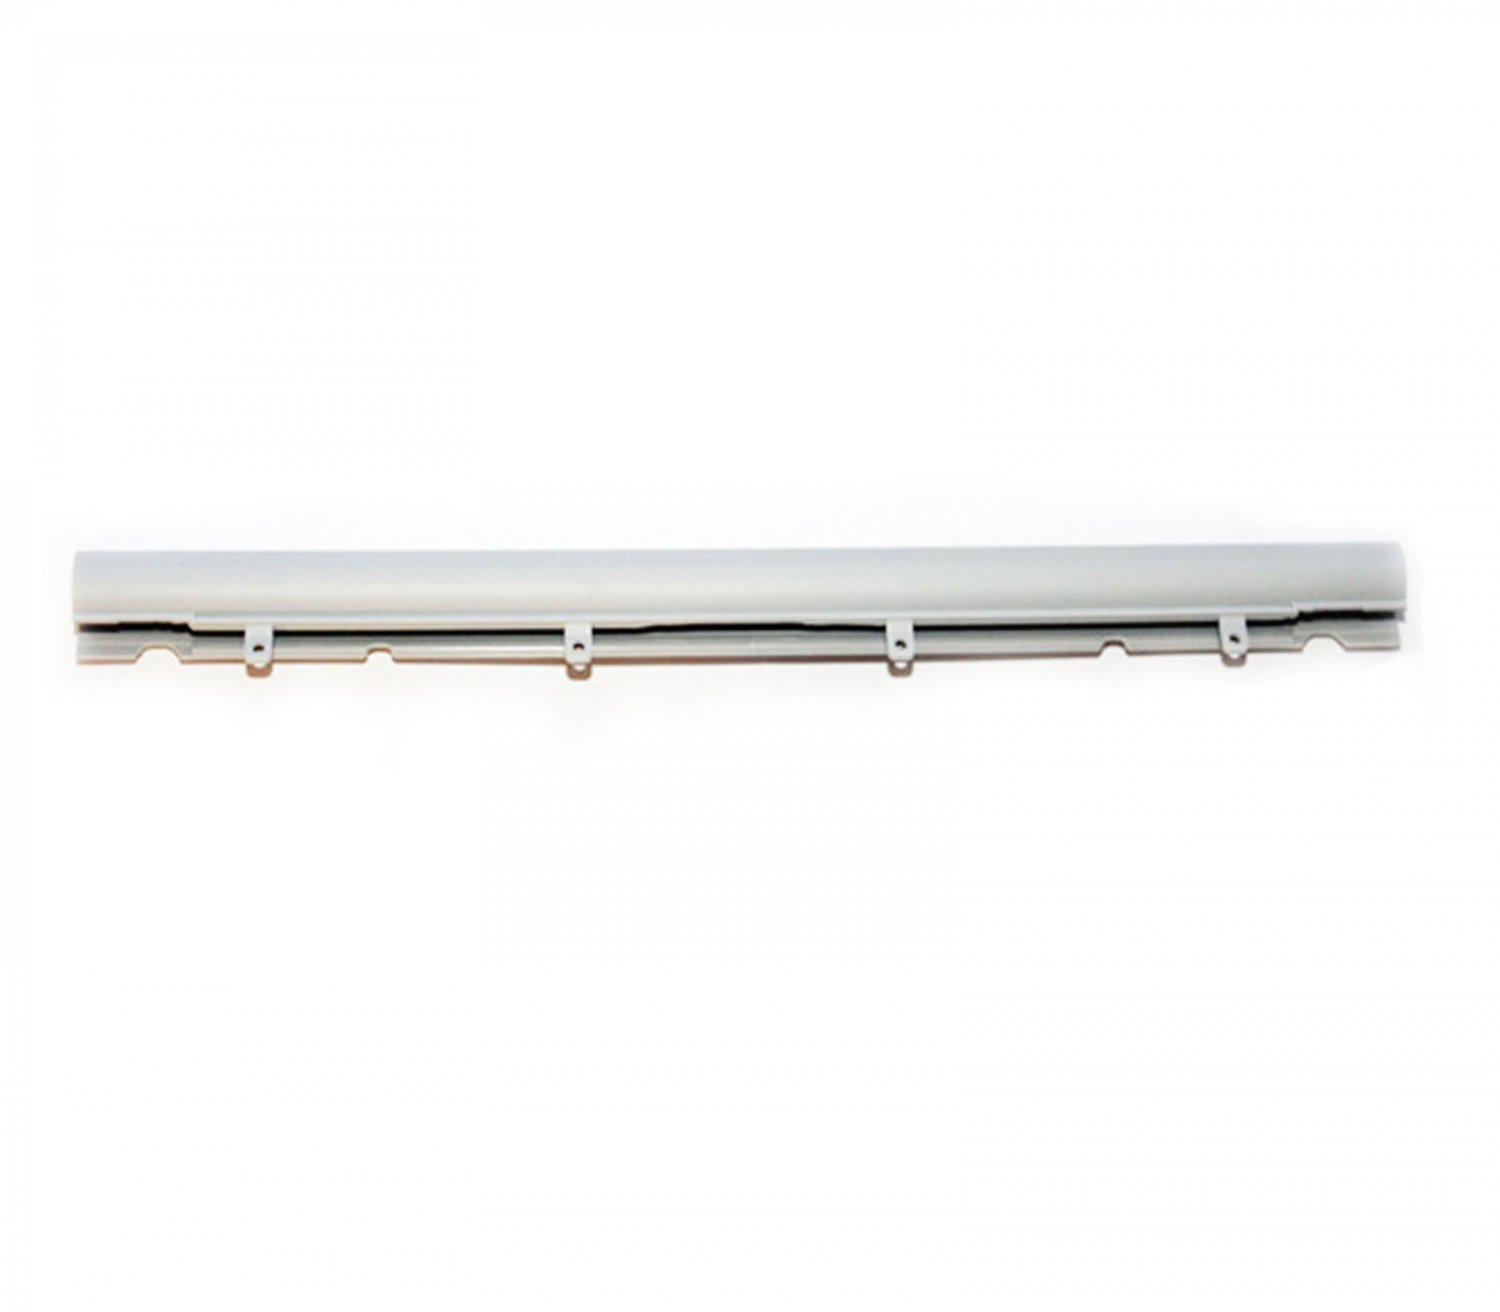 NEW Macbook Air 13Inch A1237 A1304 Hinge Hinges Antenna Cover